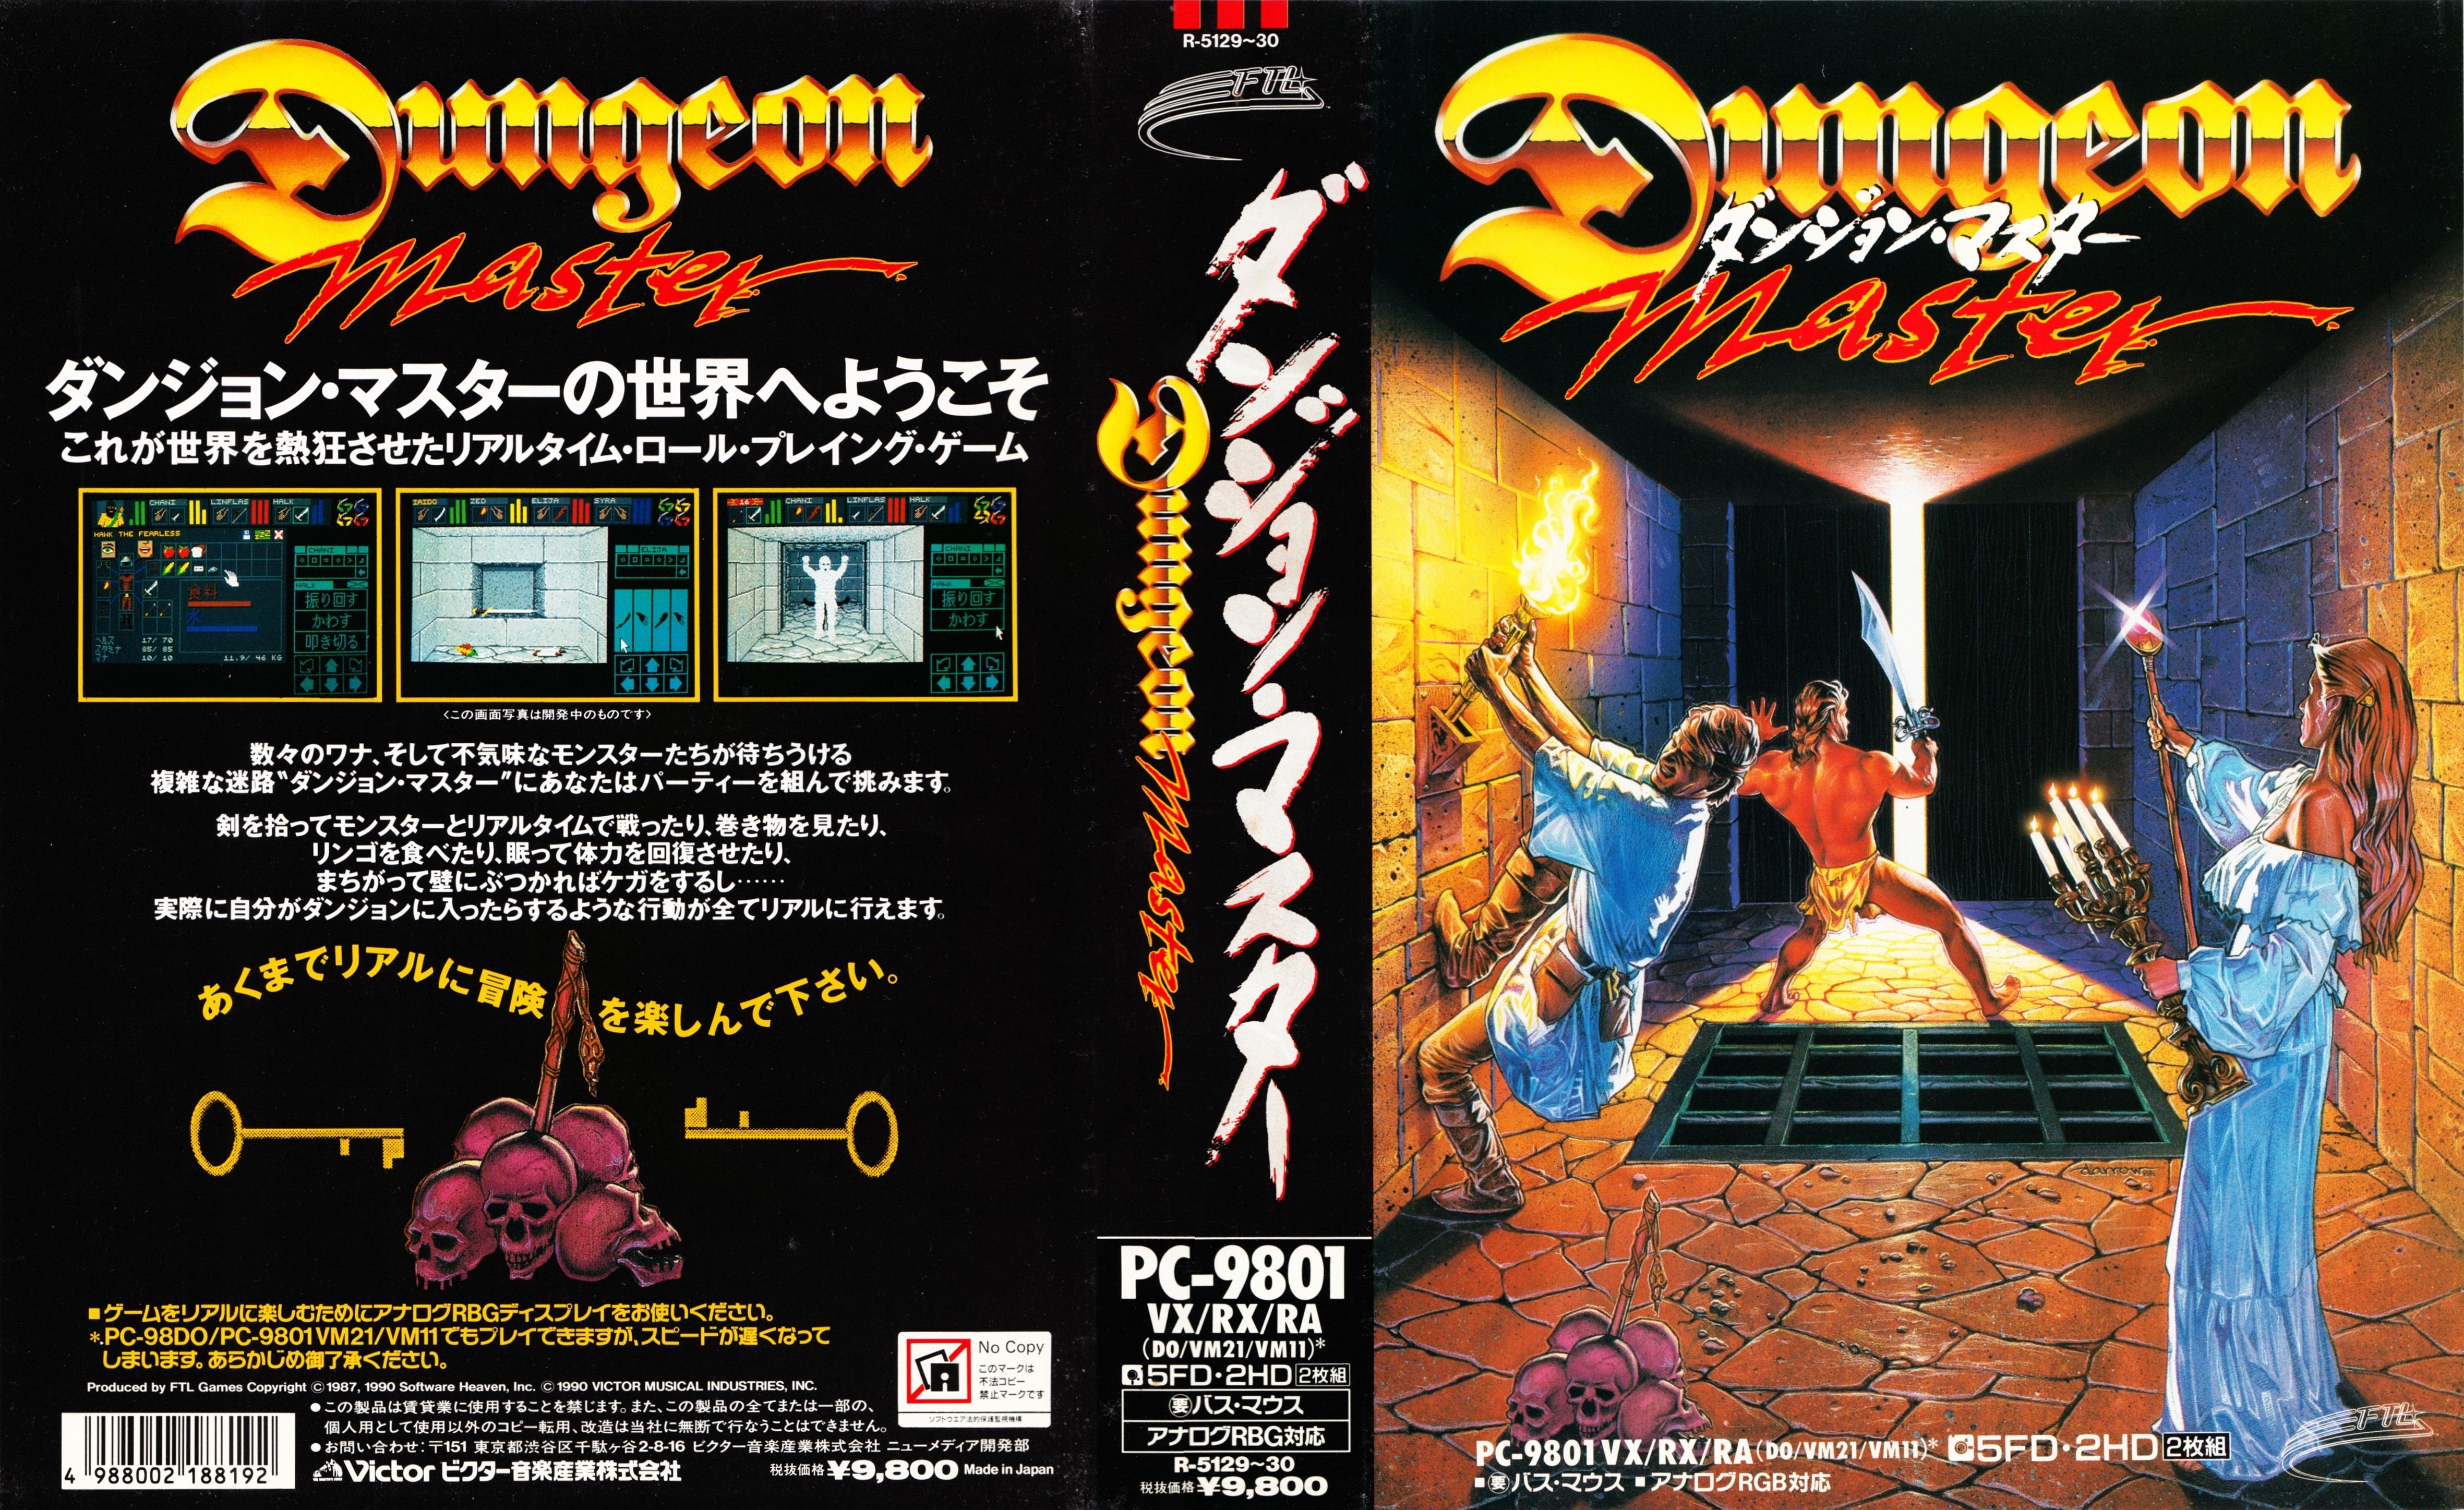 Game - Dungeon Master - JP - PC-9801 - 5.25-inch - Cover - Front - Scan